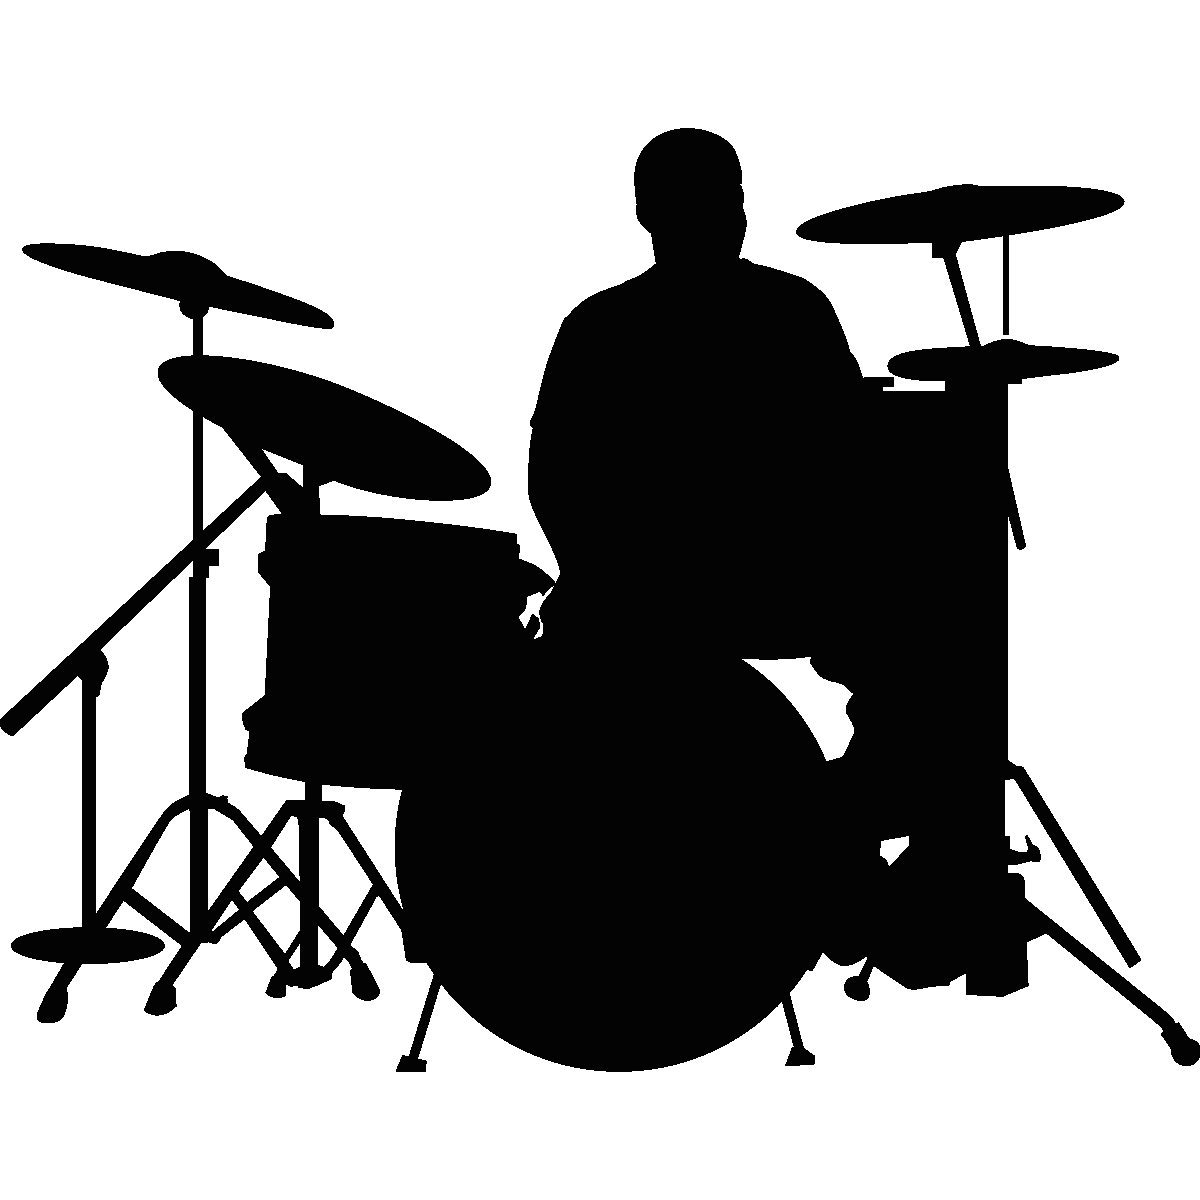 Wall decals music - Wall decal Drummer   Ambiance-sticker.com